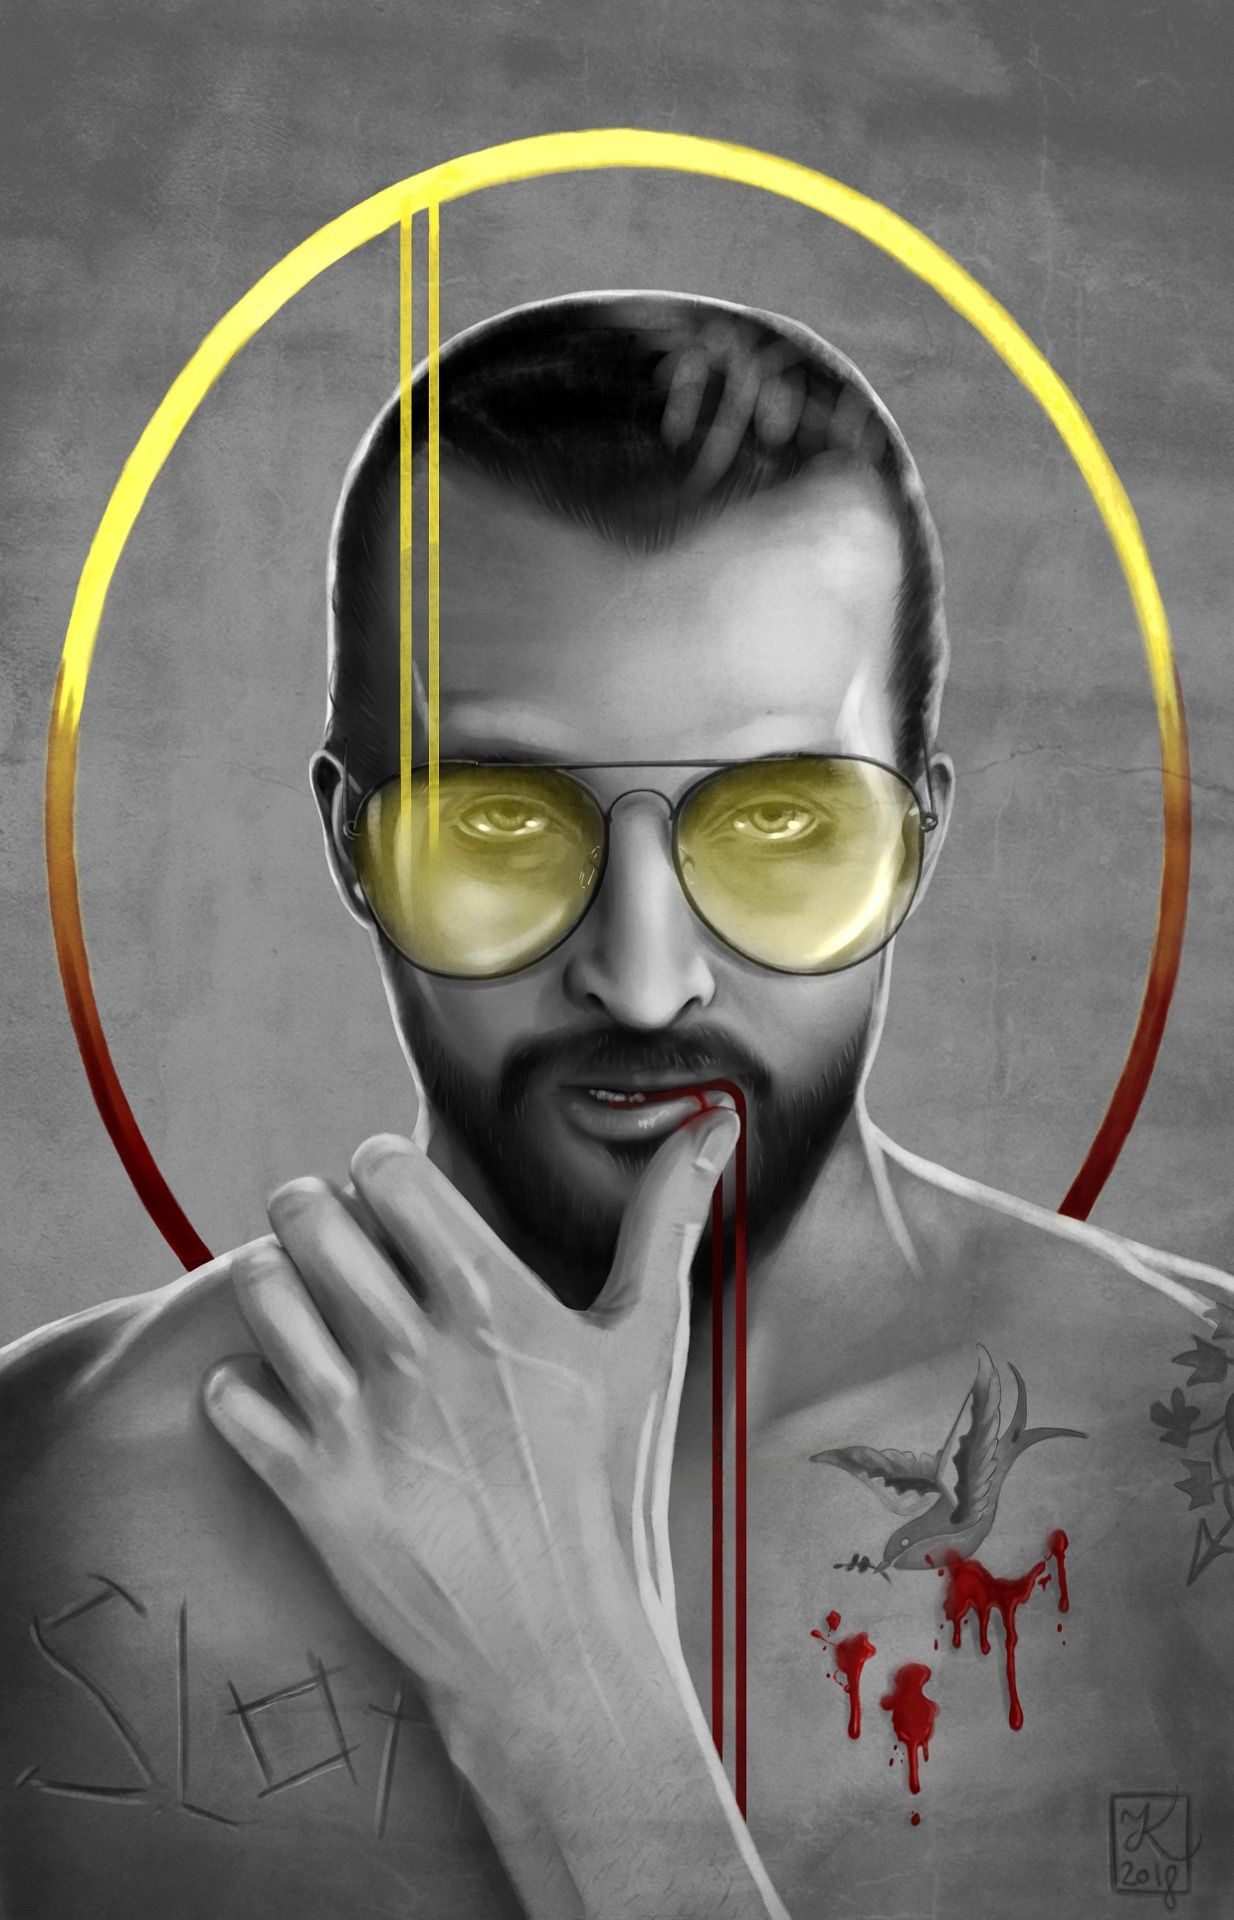 Far cry 5 image by shelby henshaw on far cry far cry